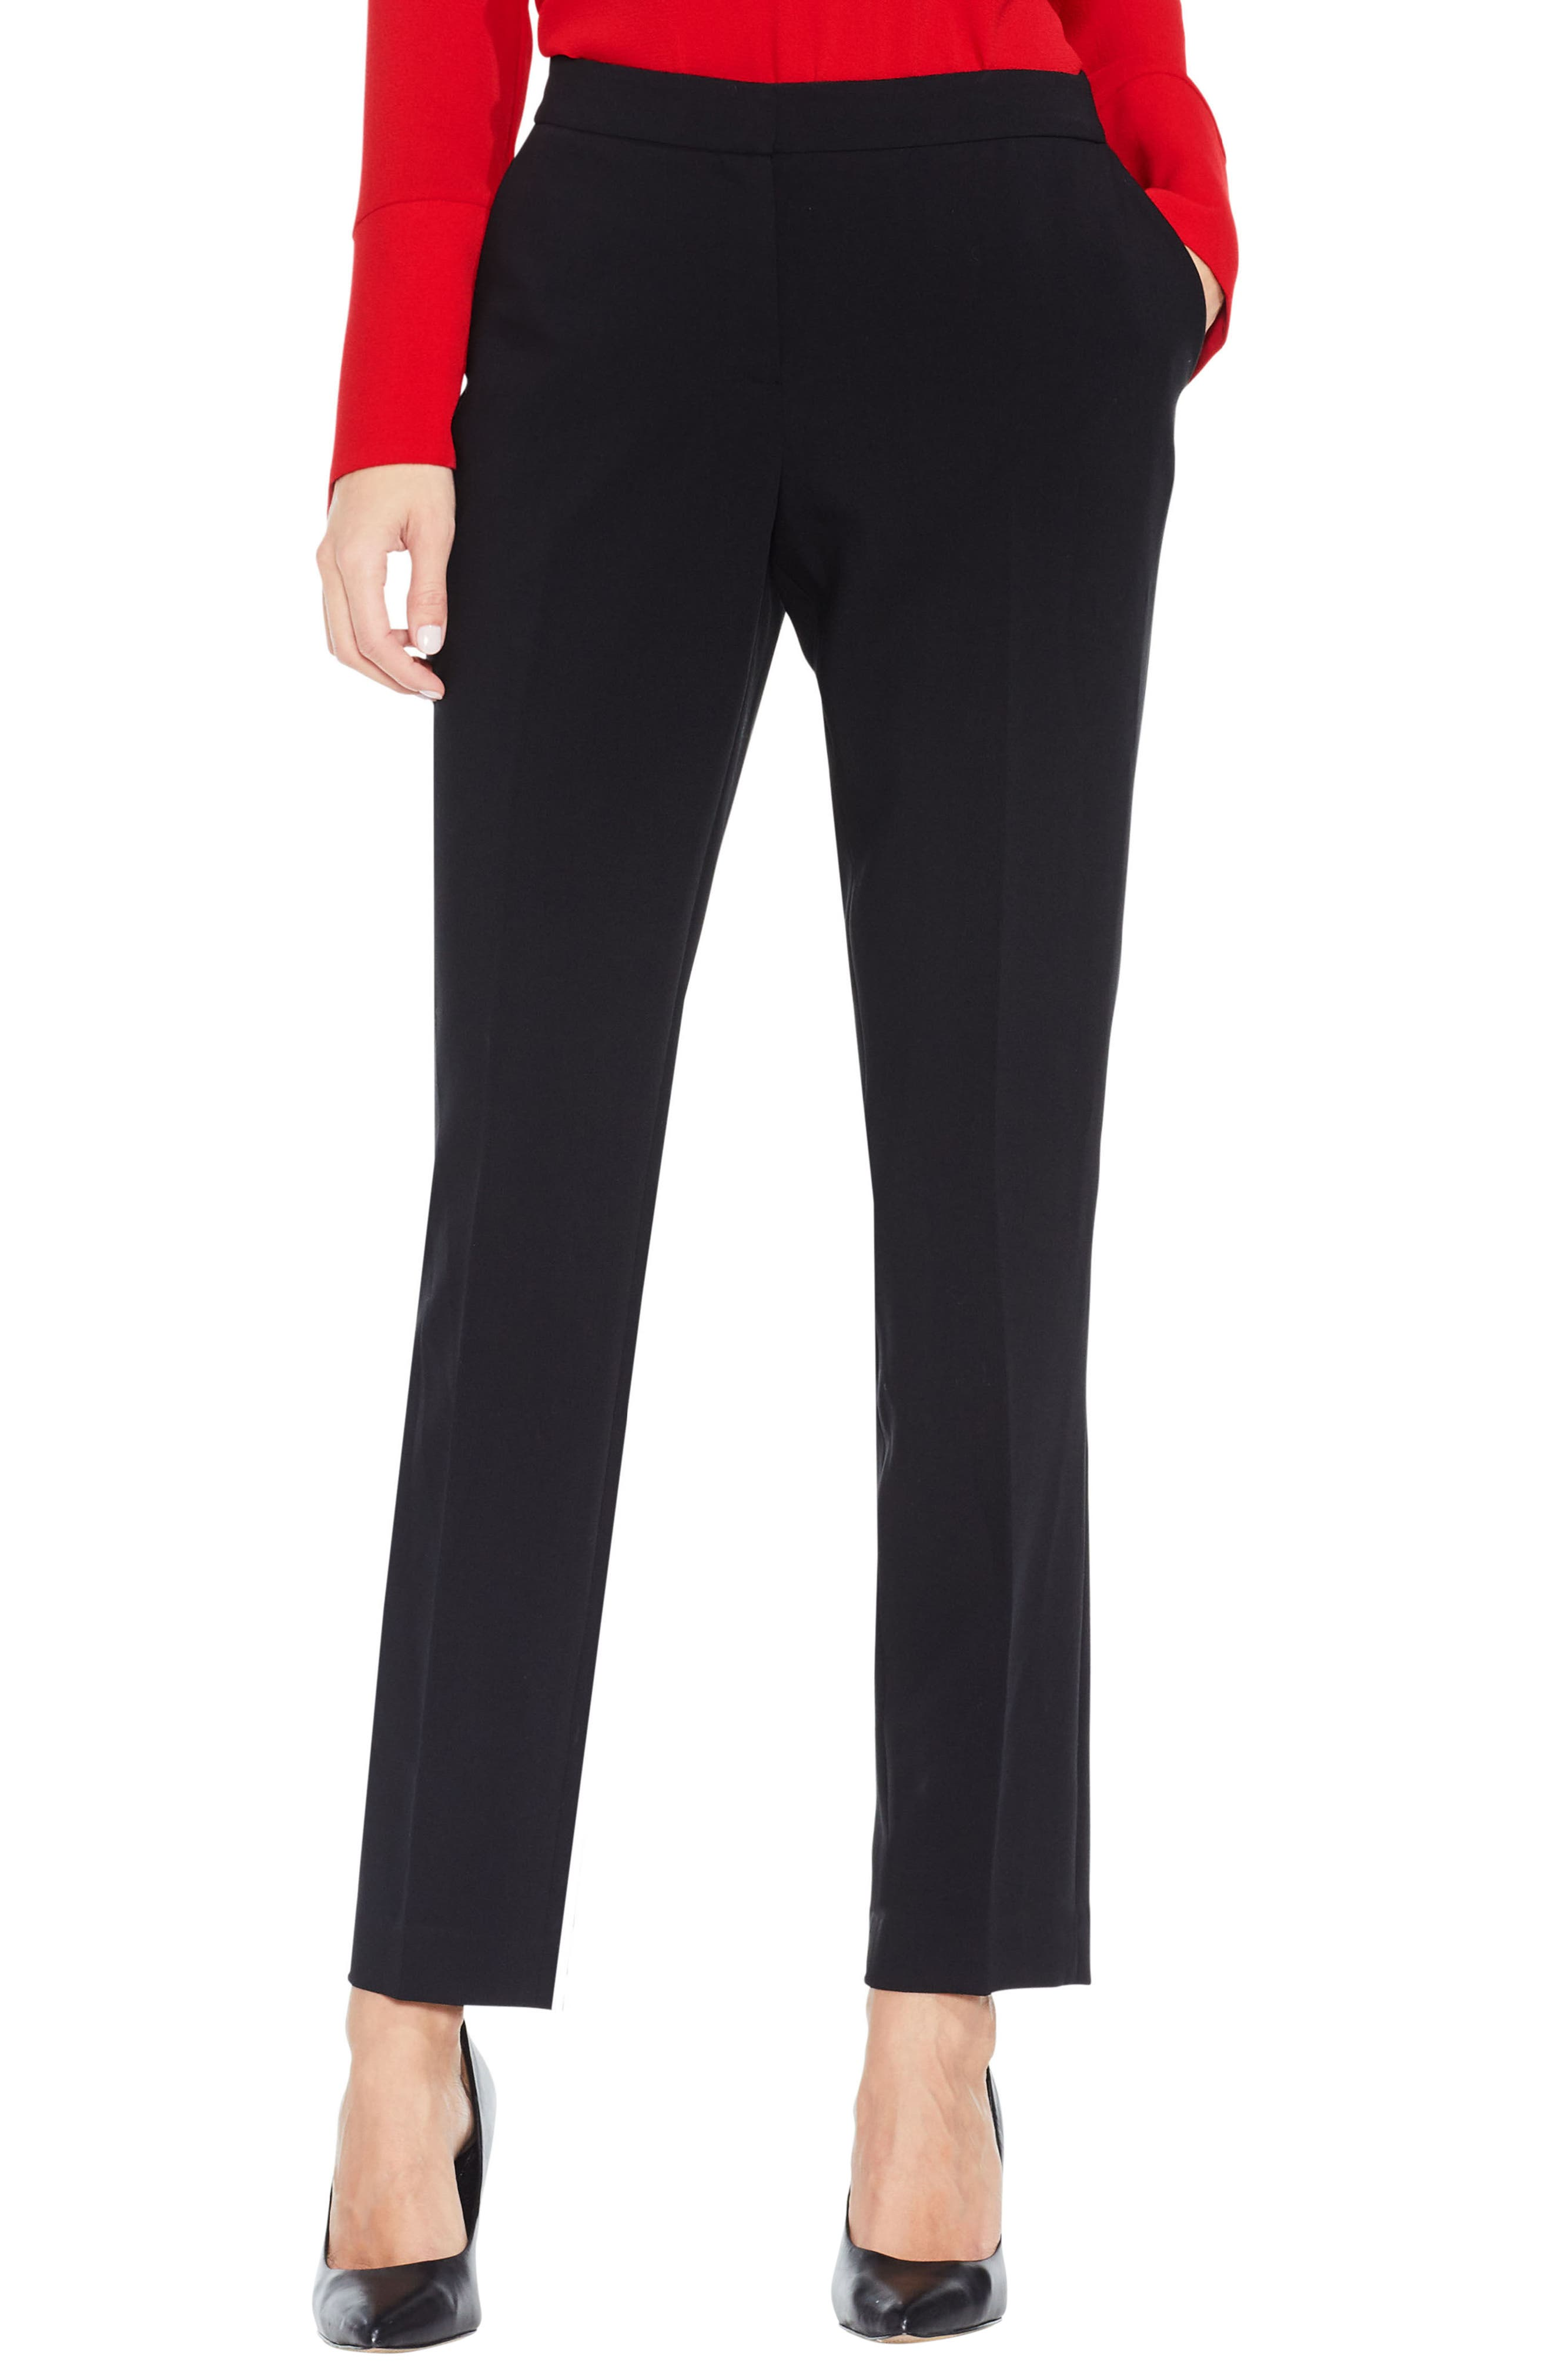 Main Image - Vince Camuto Stretch Suiting Skinny Pants